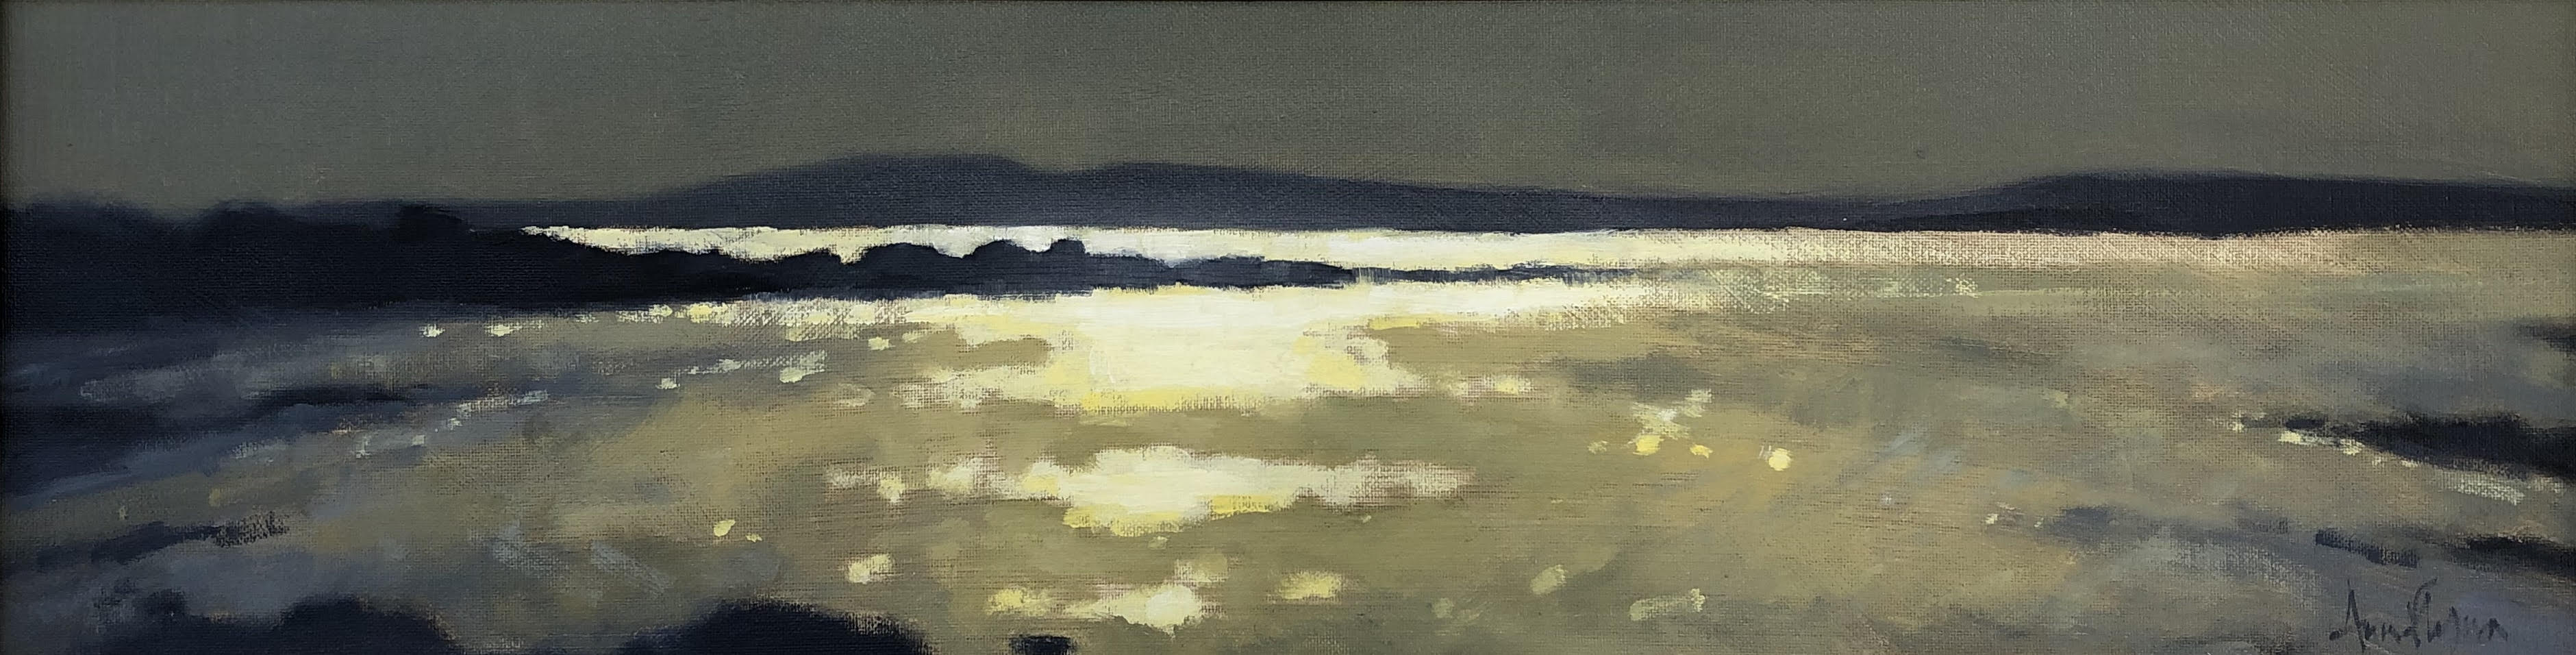 Shoreline, Spiddal by Ann Flynn